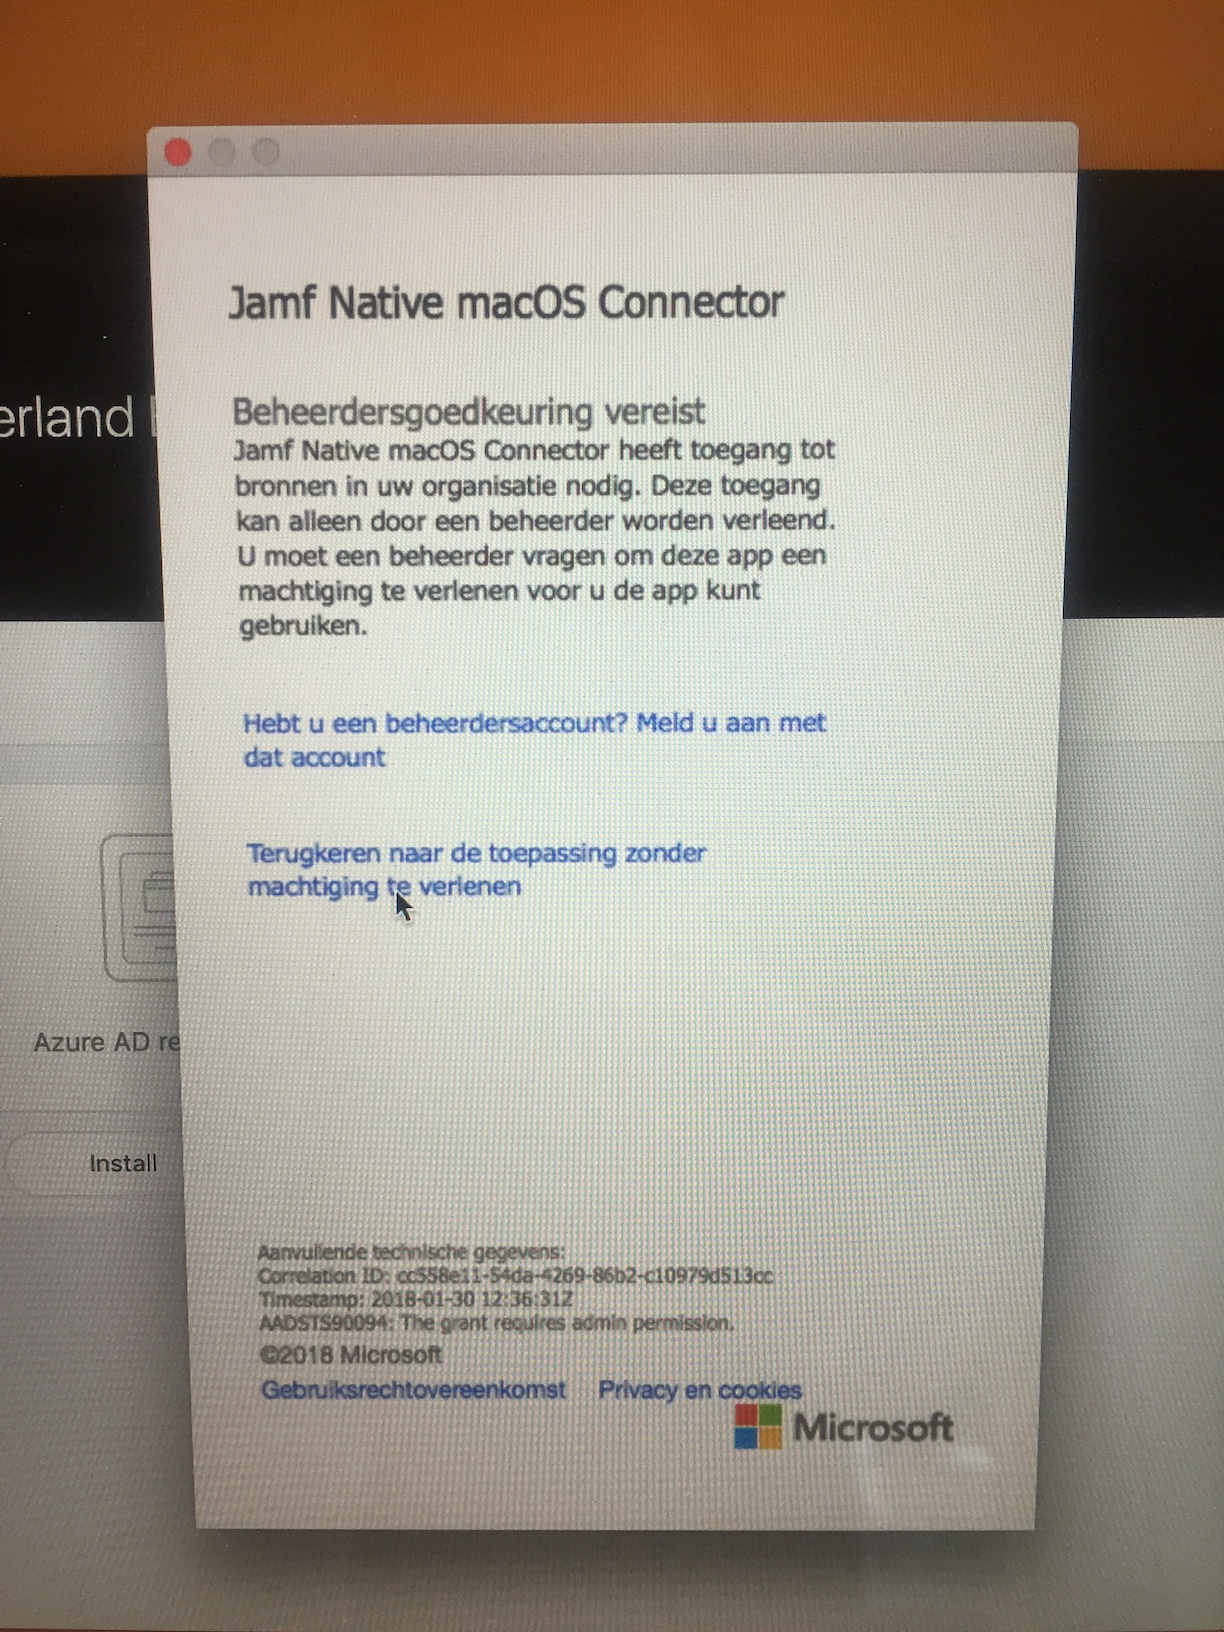 Intune Jamf Native macOS Connector keeps asking for admin